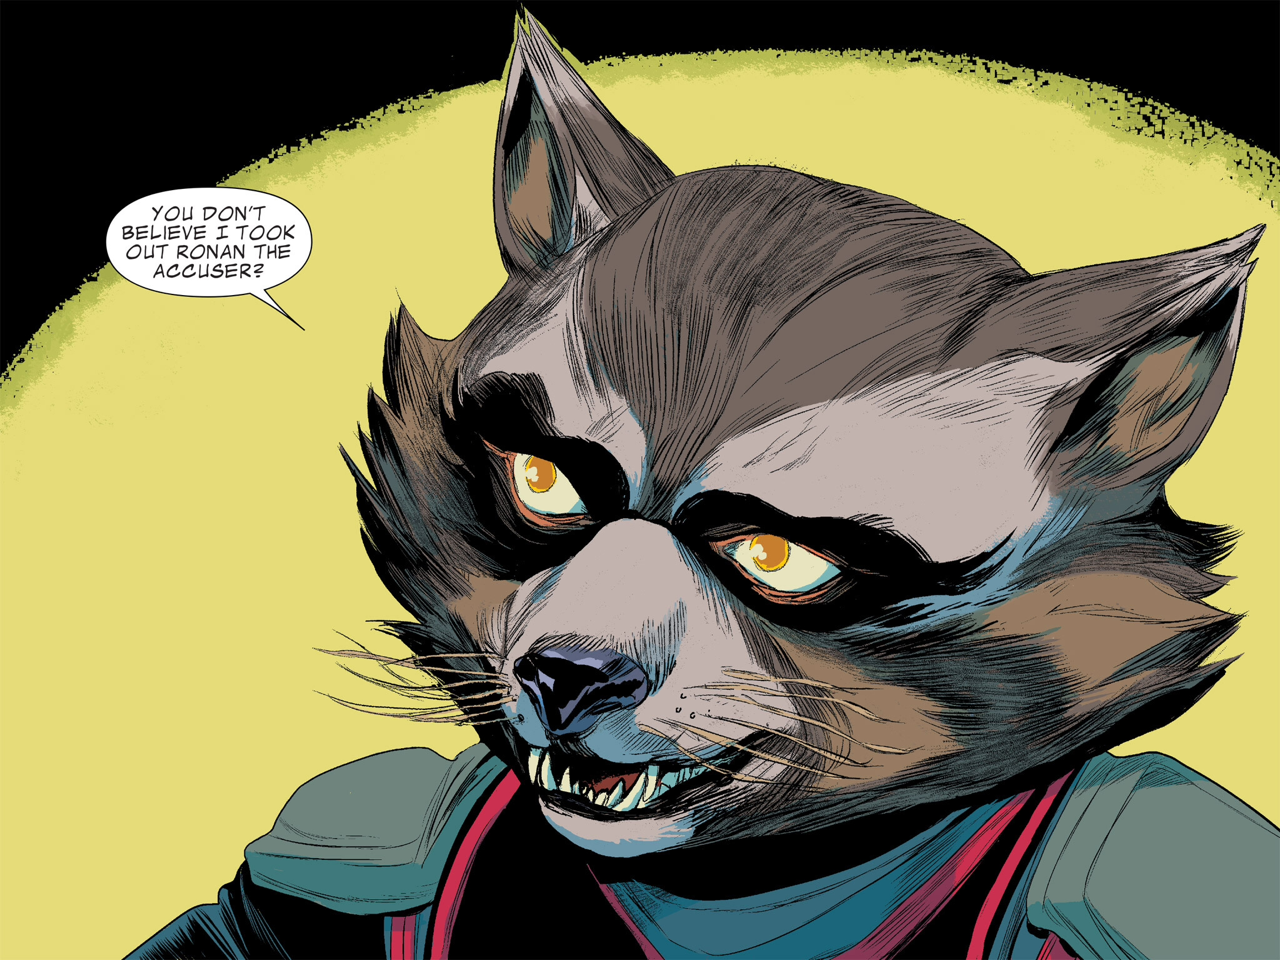 http://media.comicbook.com/uploads1/2014/06/rocket-raccoon-from-guardians-of-the-galaxy-infinite-comic-2-101664.png